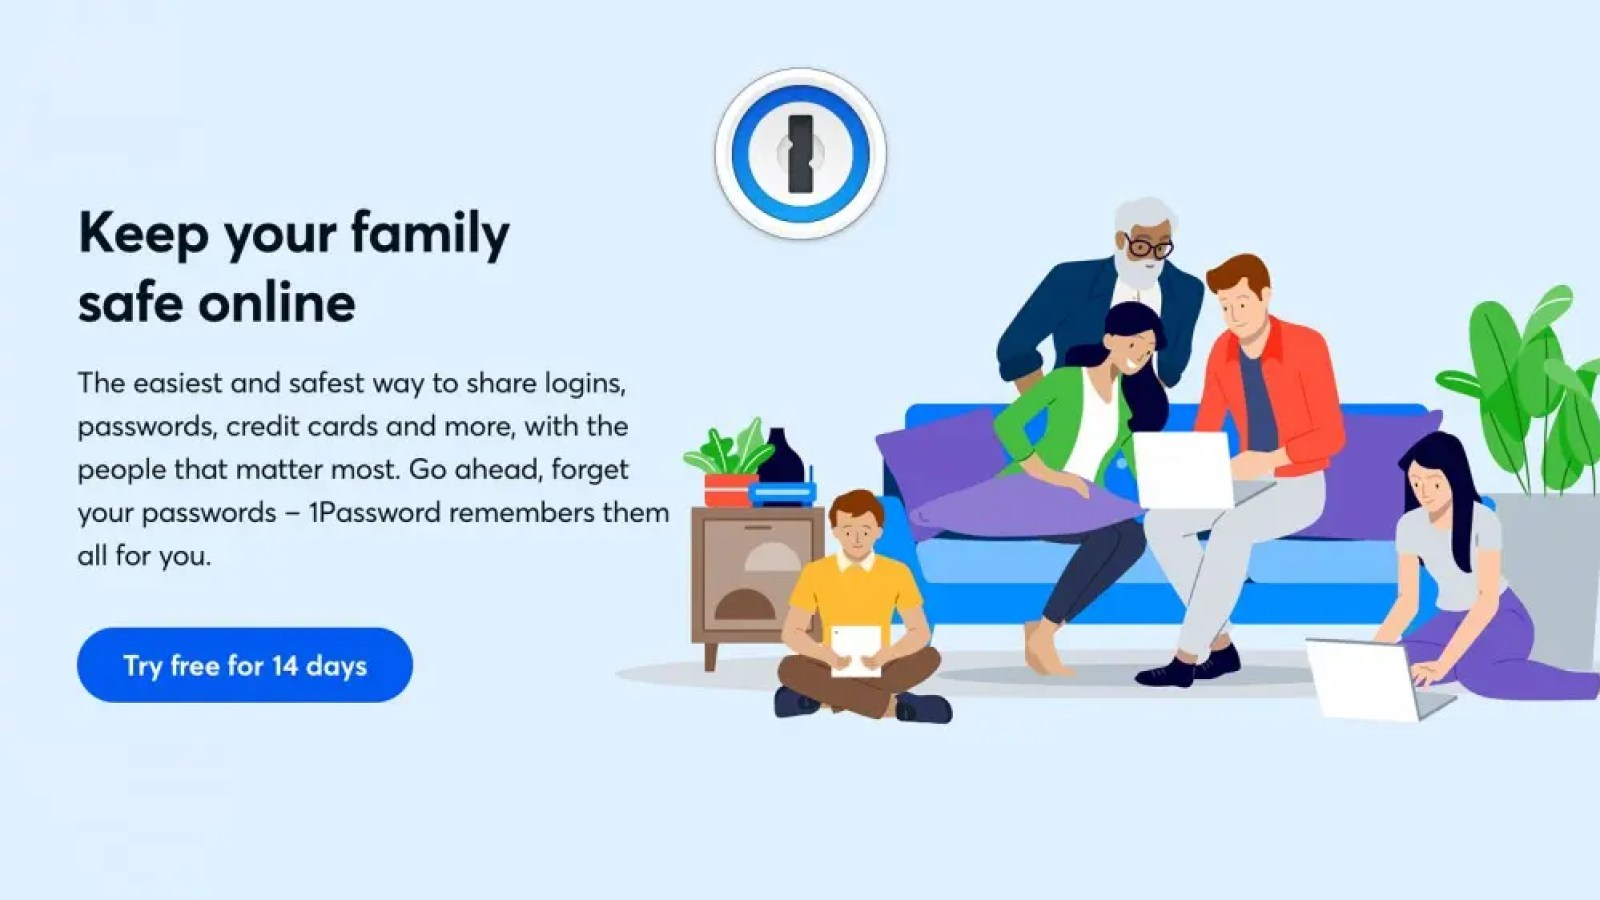 An illustration of a family using 1Password.